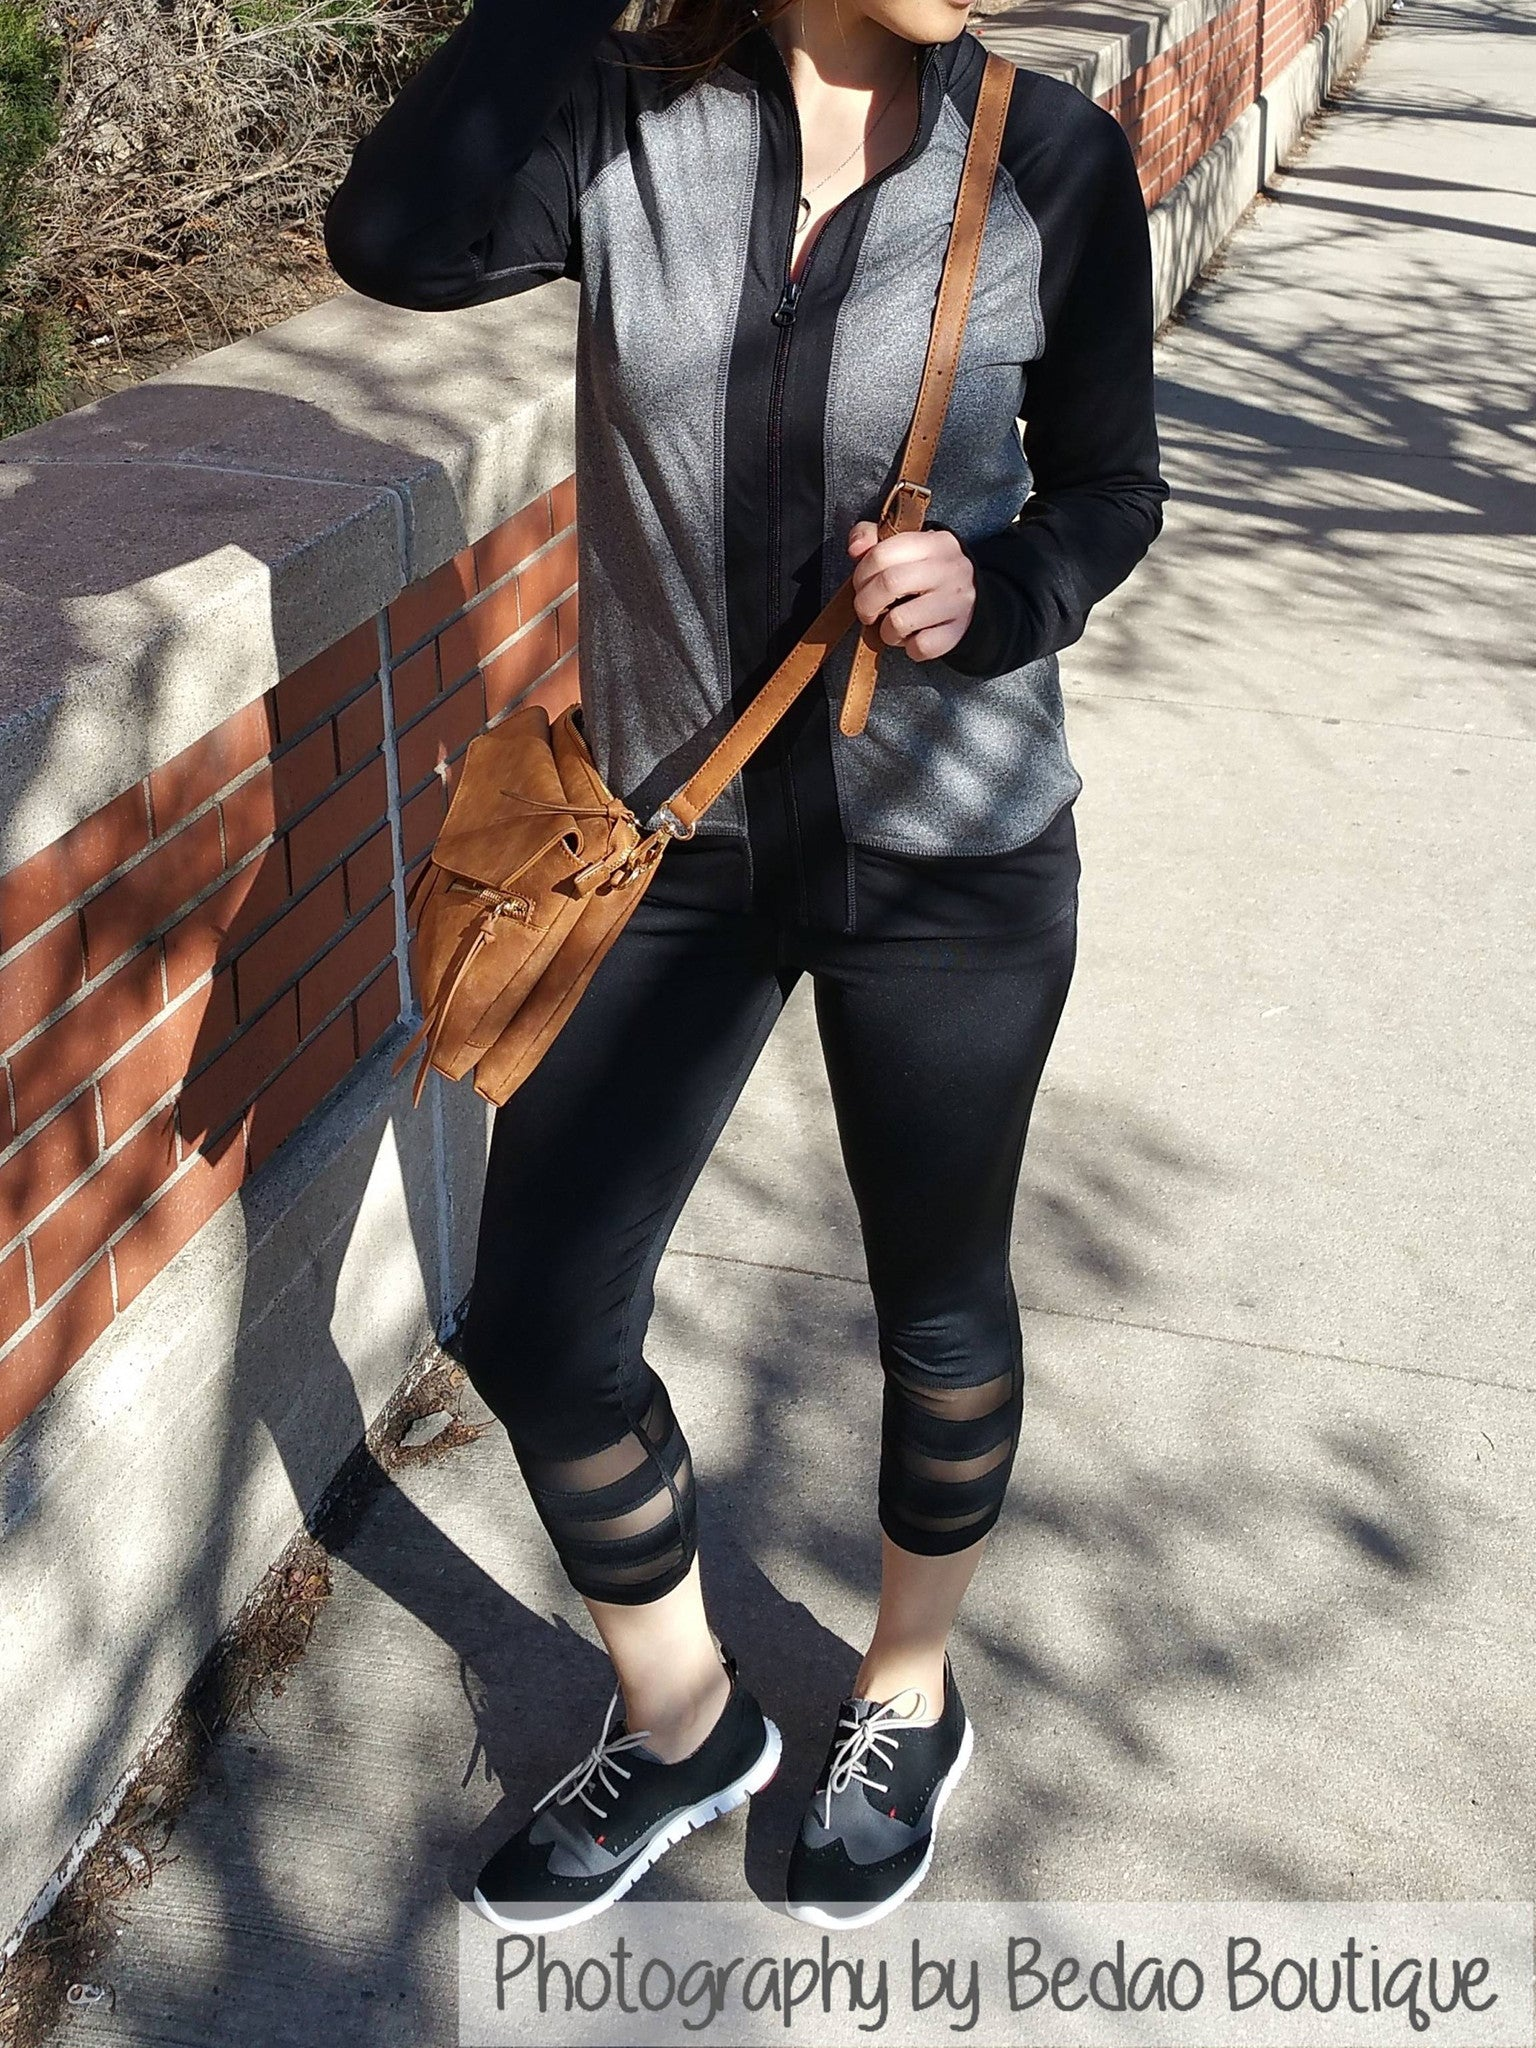 Woman wearing sexy mesh leggings